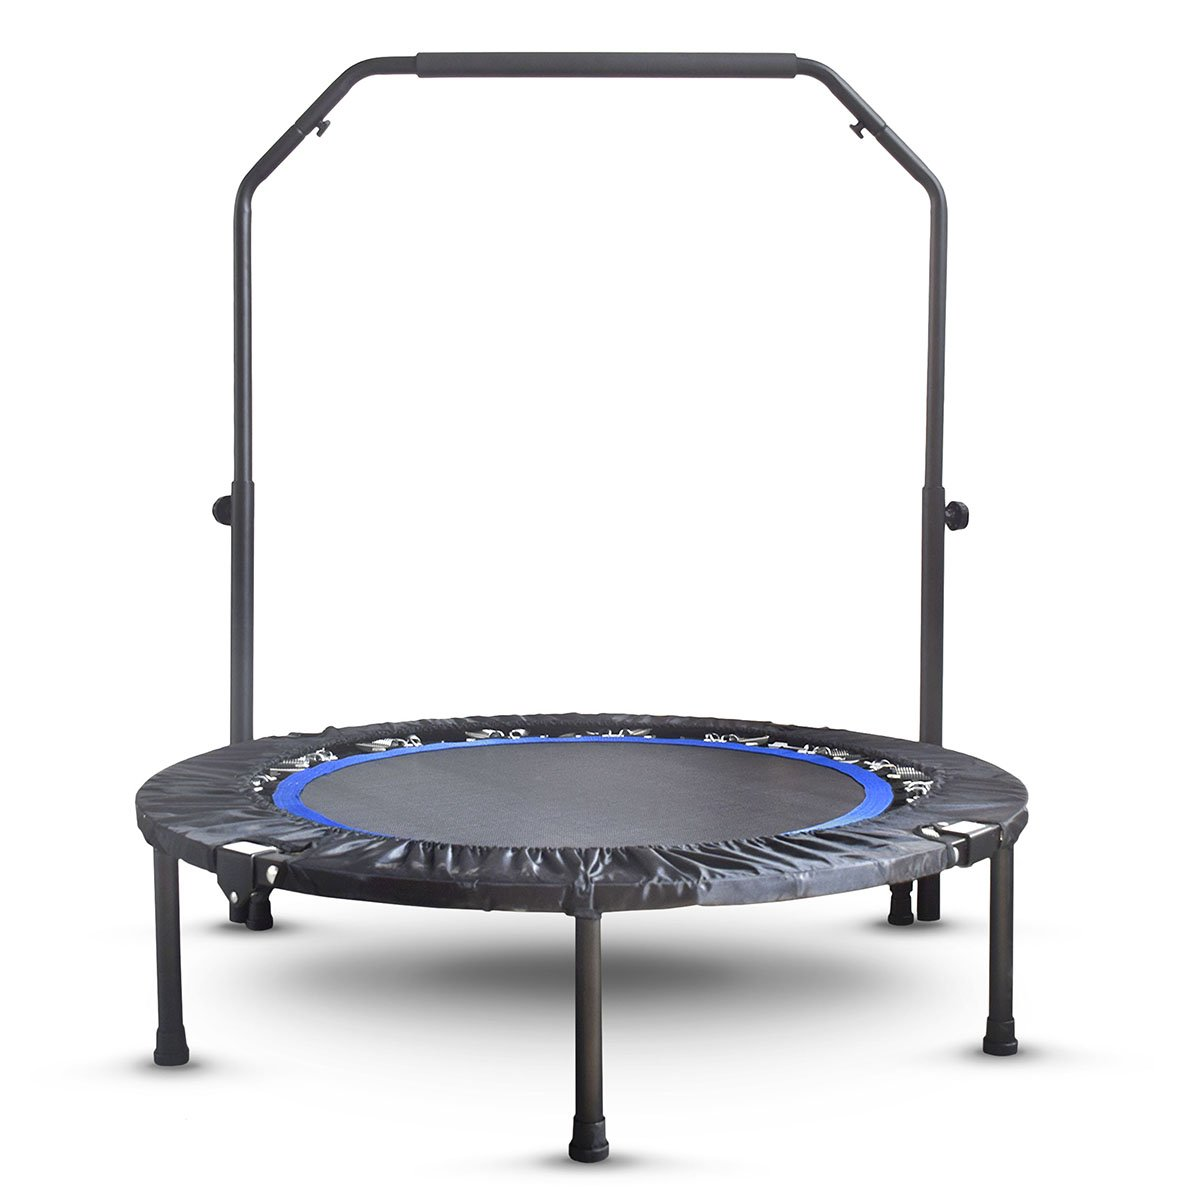 Mini Exercise Trampoline for Adults - Indoor Fitness Rebounder with Adjustable Handle Bar for Kids - Spring Cover and Folding Legs For Small Storage by Activox